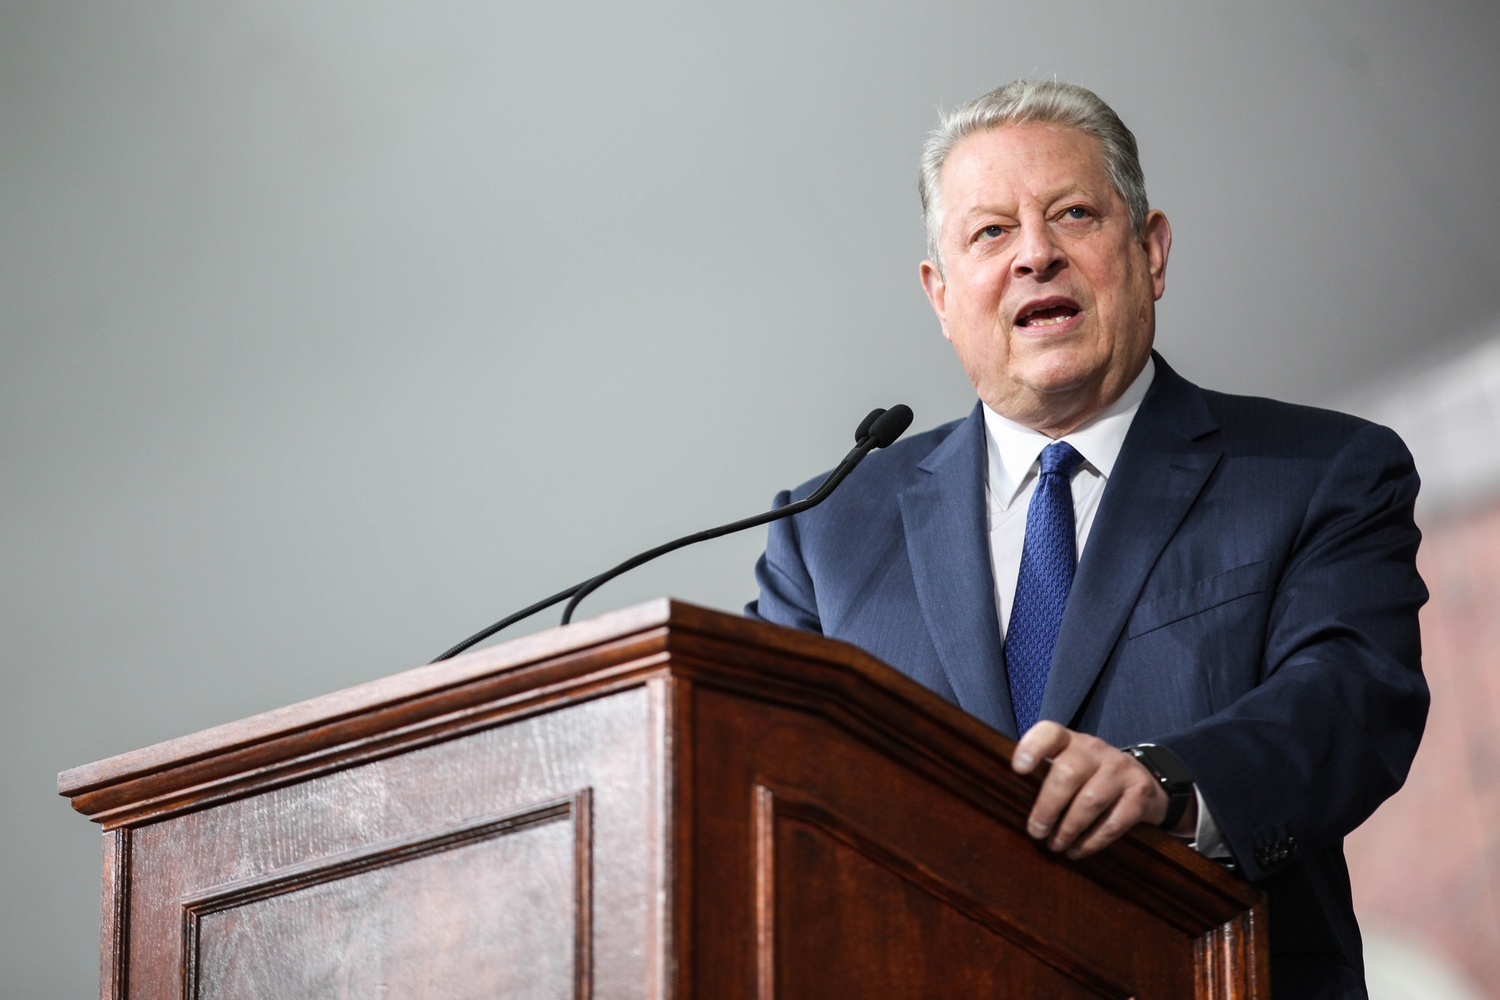 Former United States Vice President Al Gore '69 spoke at the College Class Day ceremony Wednesday in Tercentenary Theater.